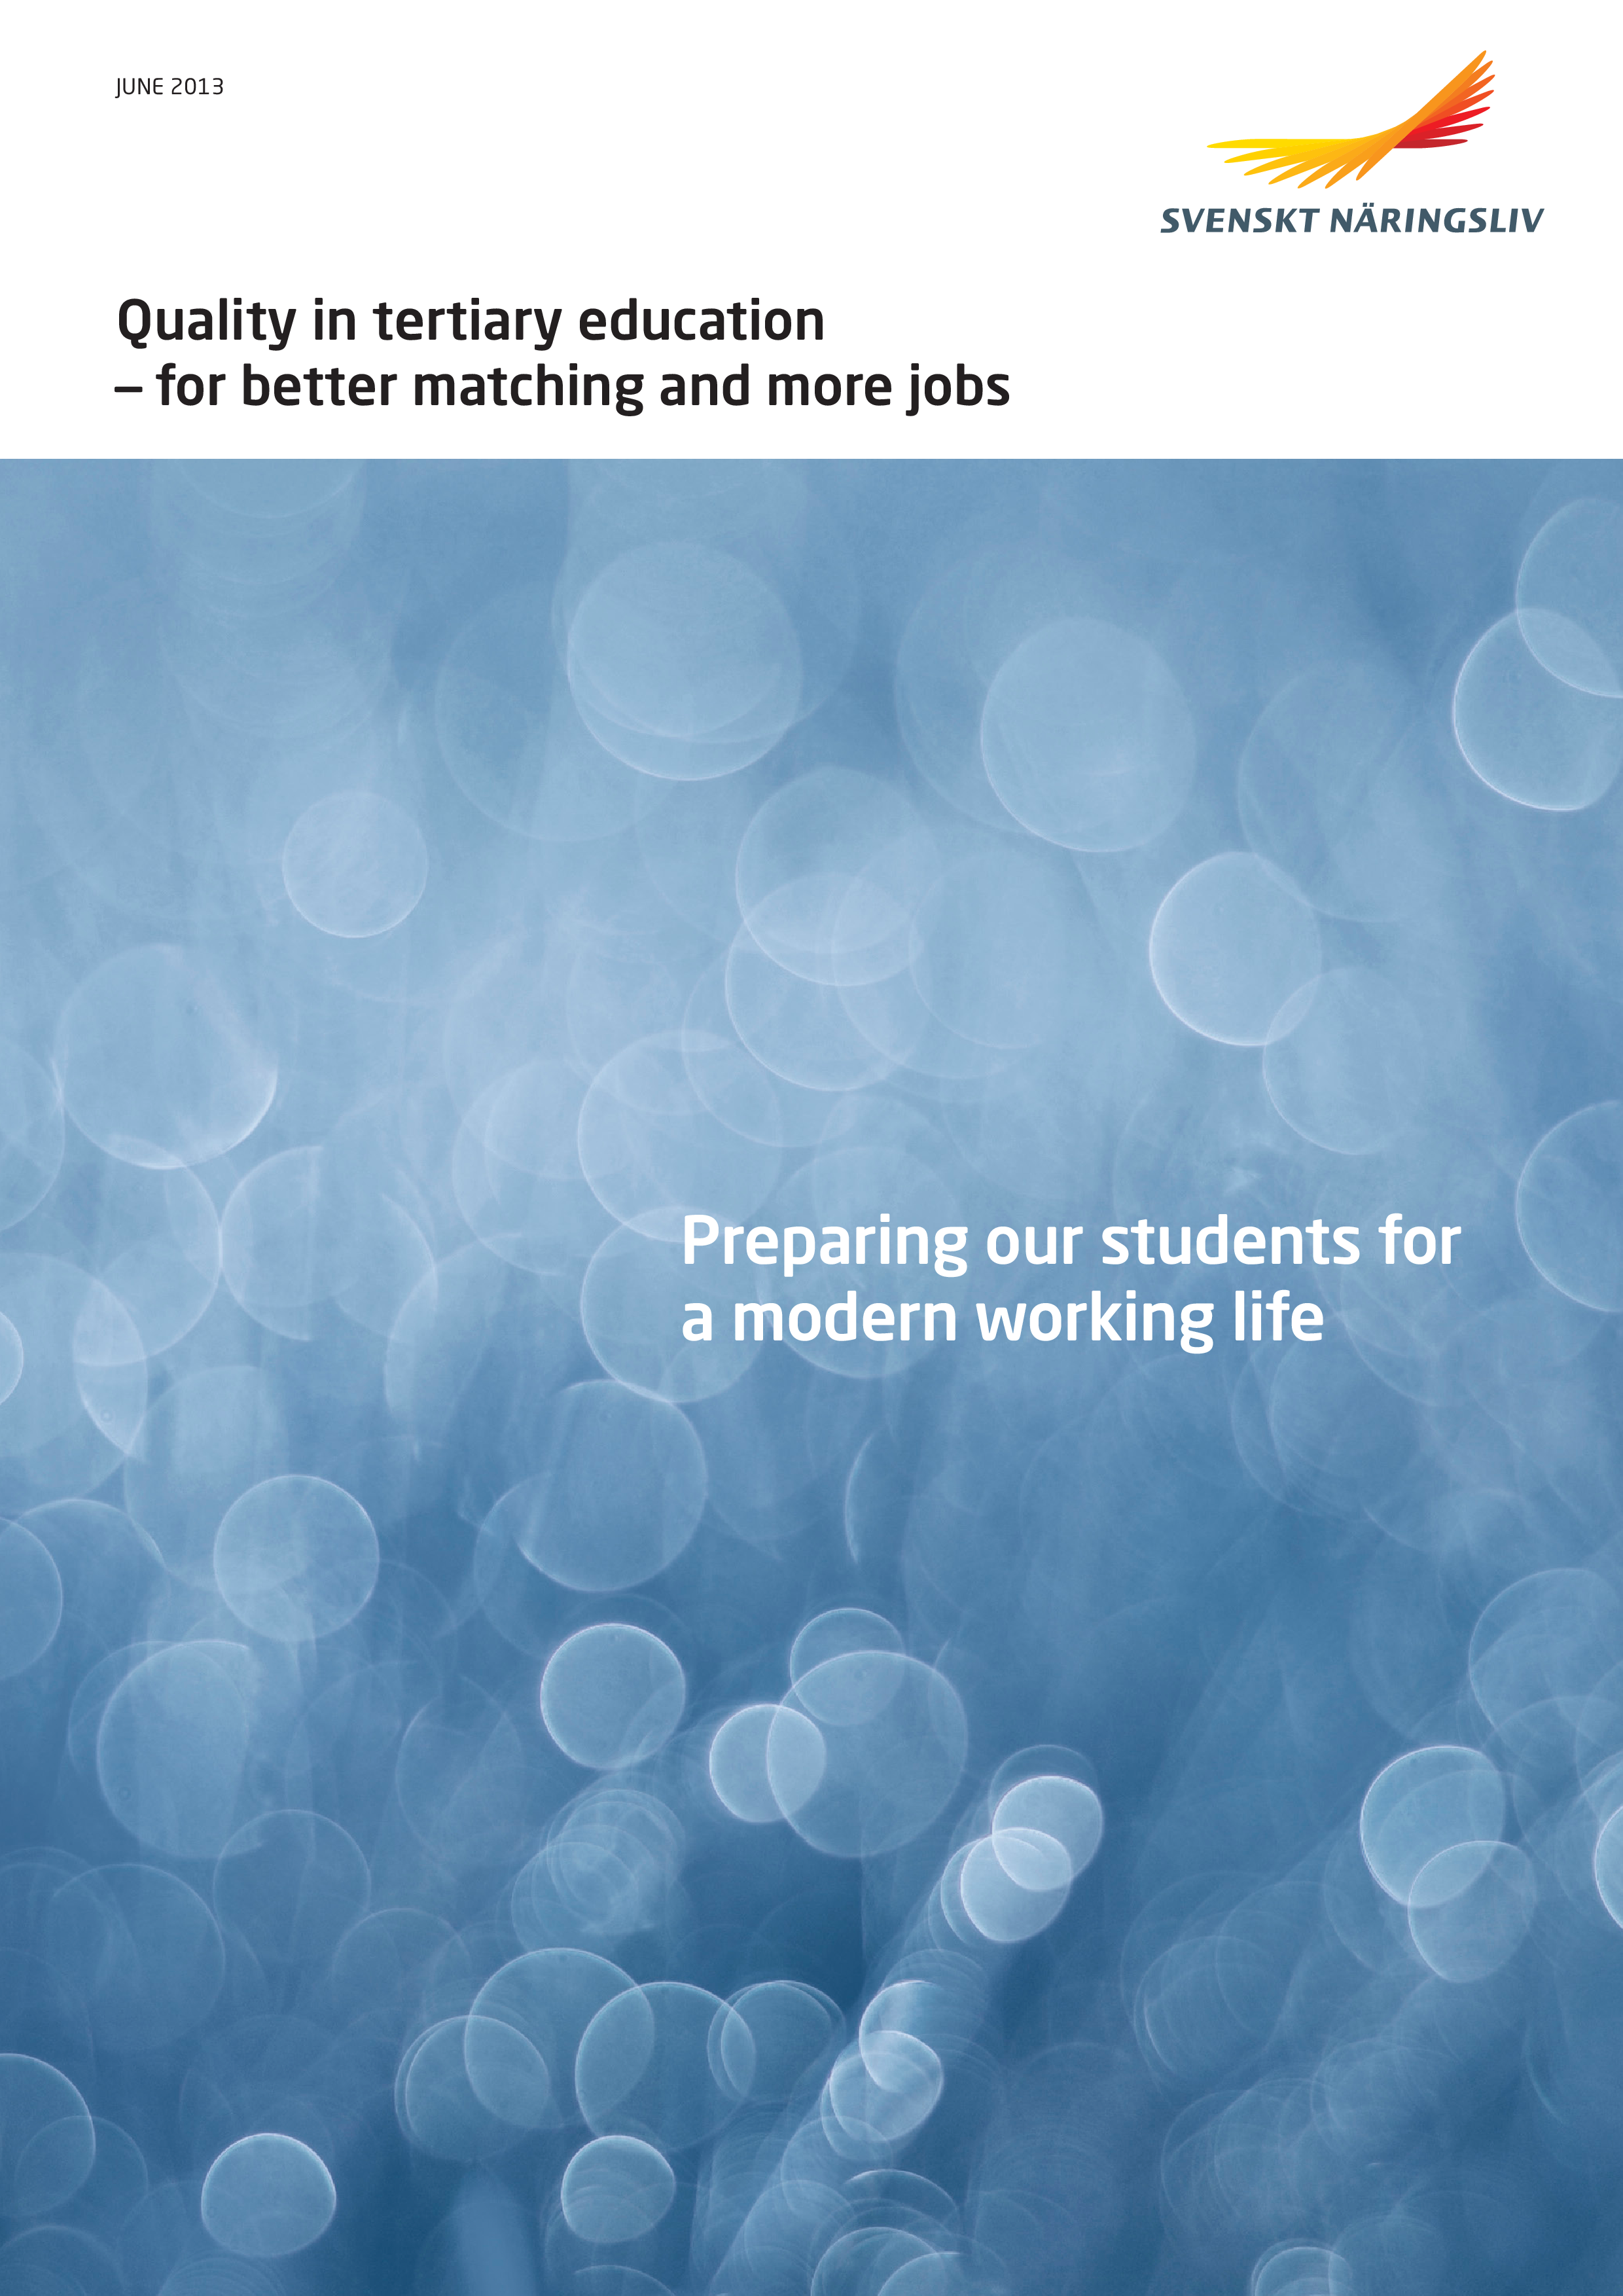 Quality in tertiary education for better matching and more jobs - preparing students for a modern working life